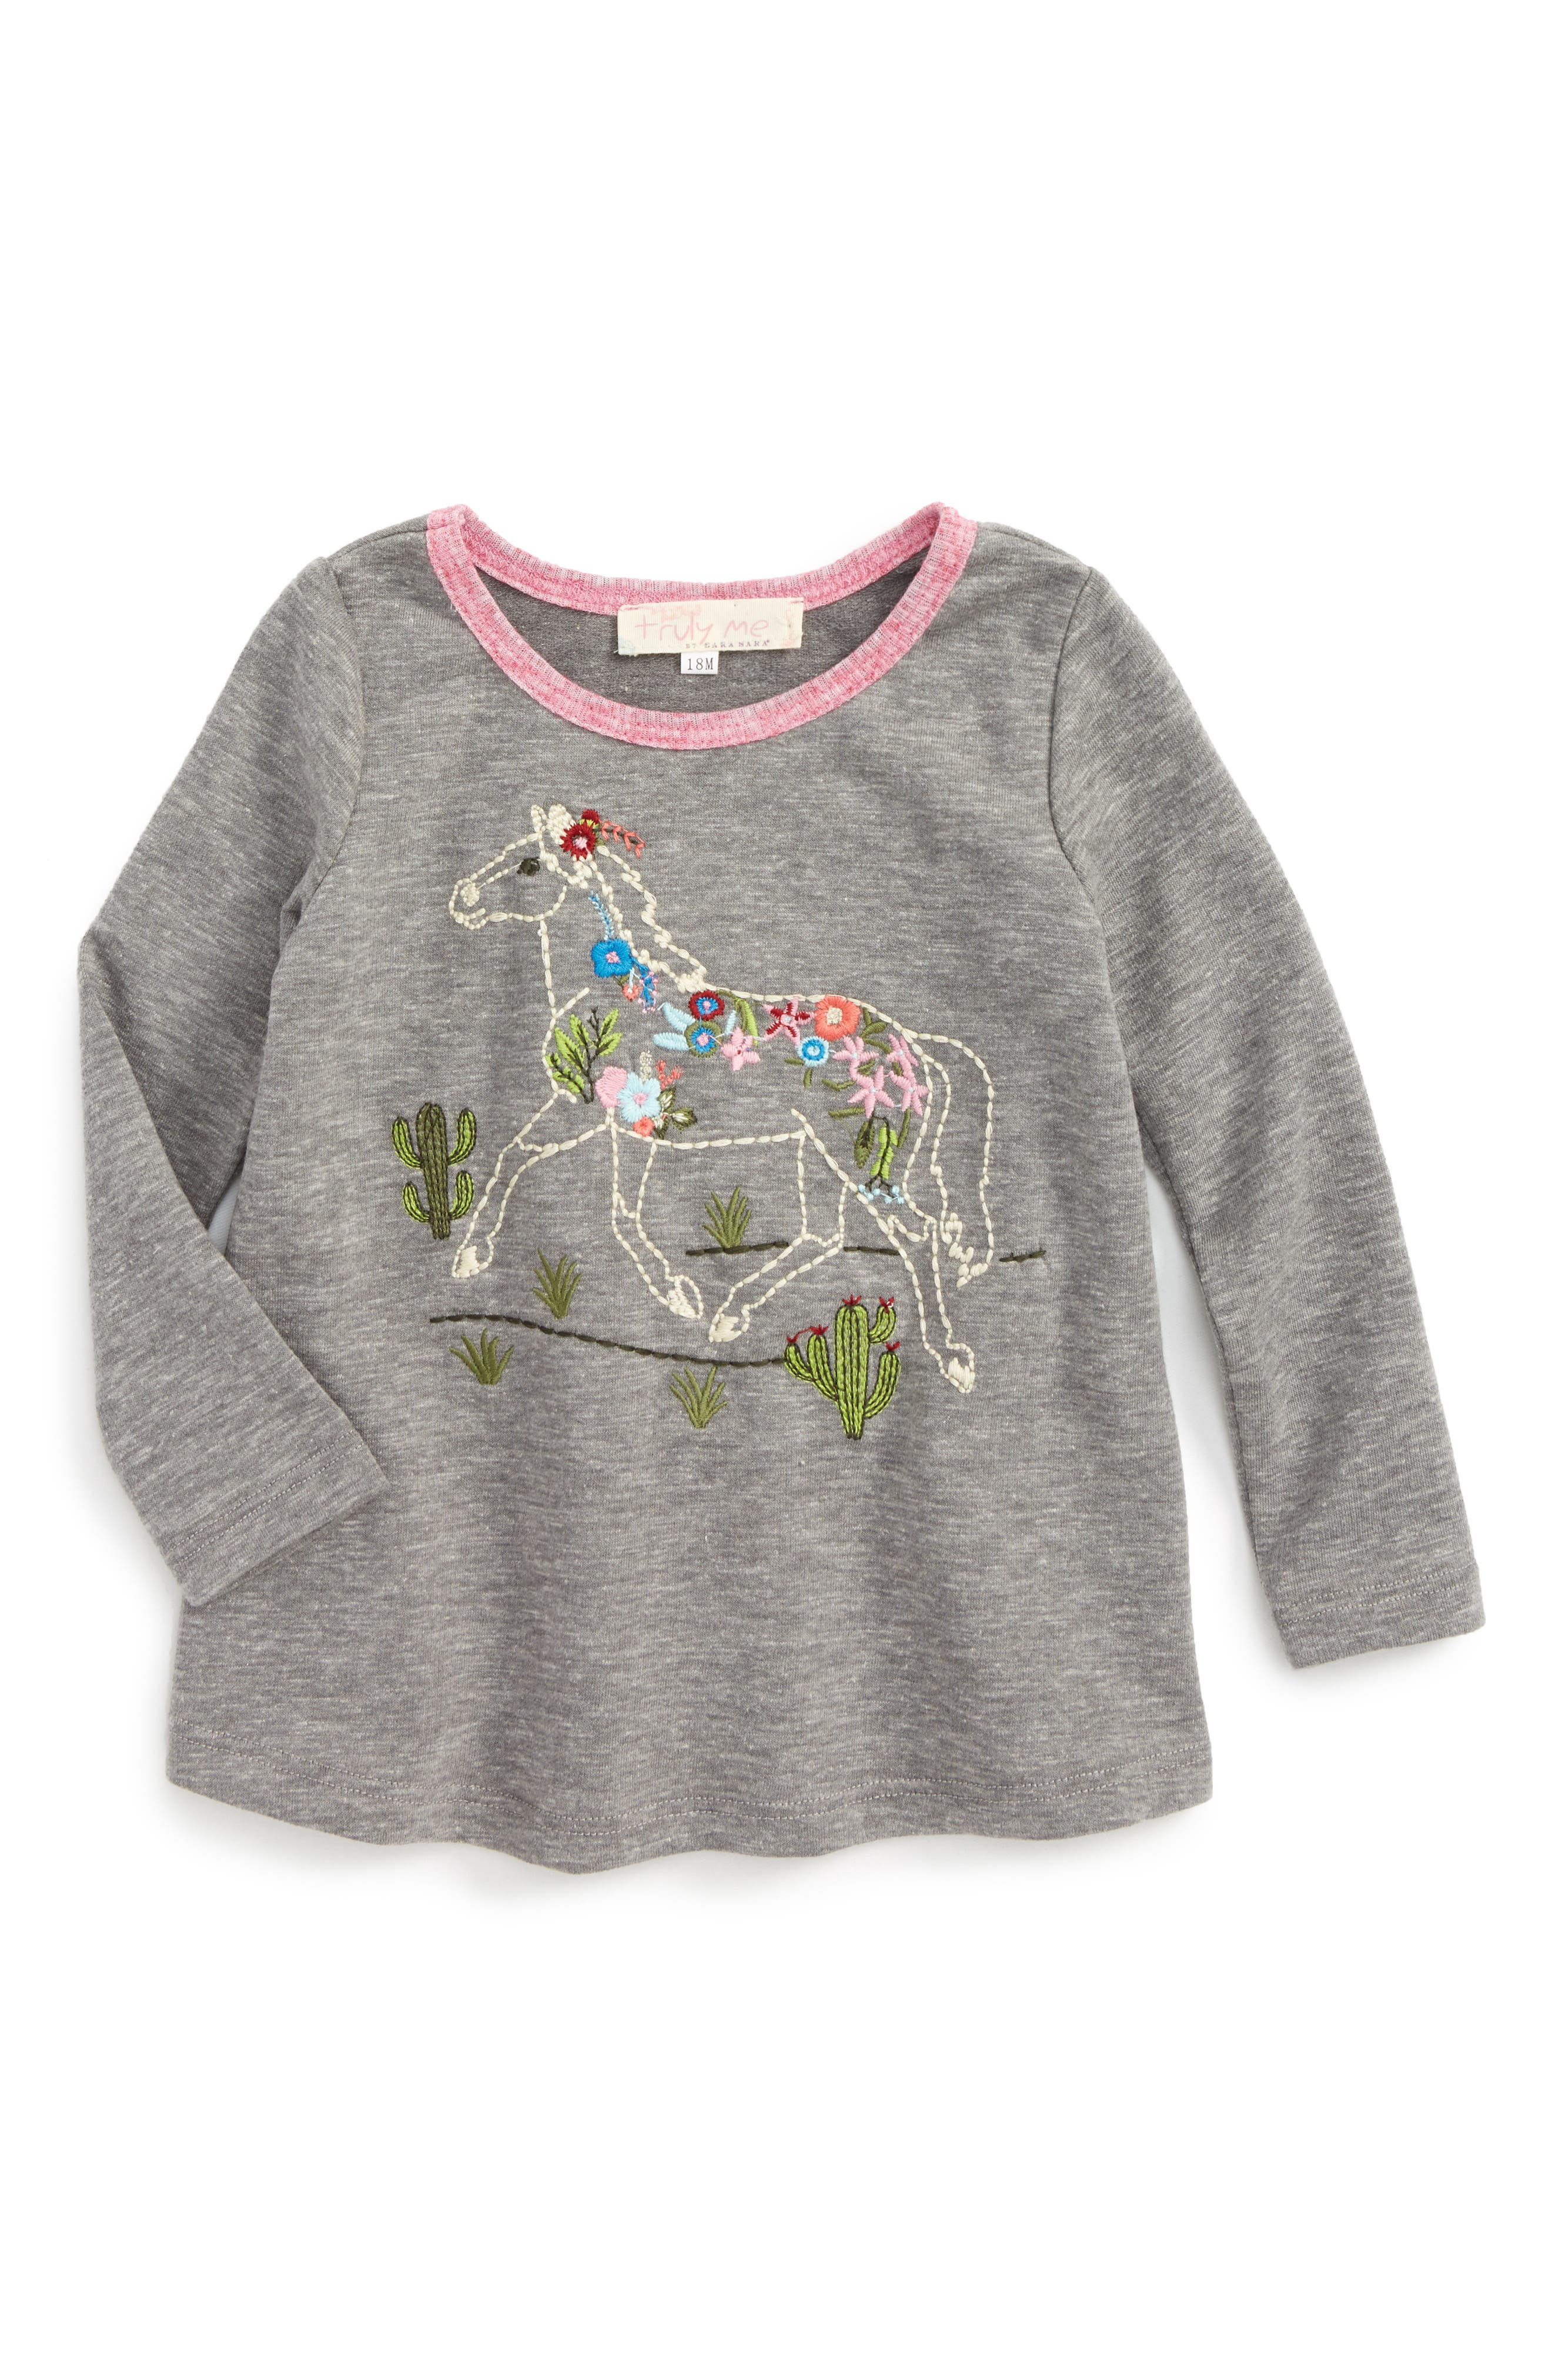 Embroidered Horse Tee,                         Main,                         color, 024